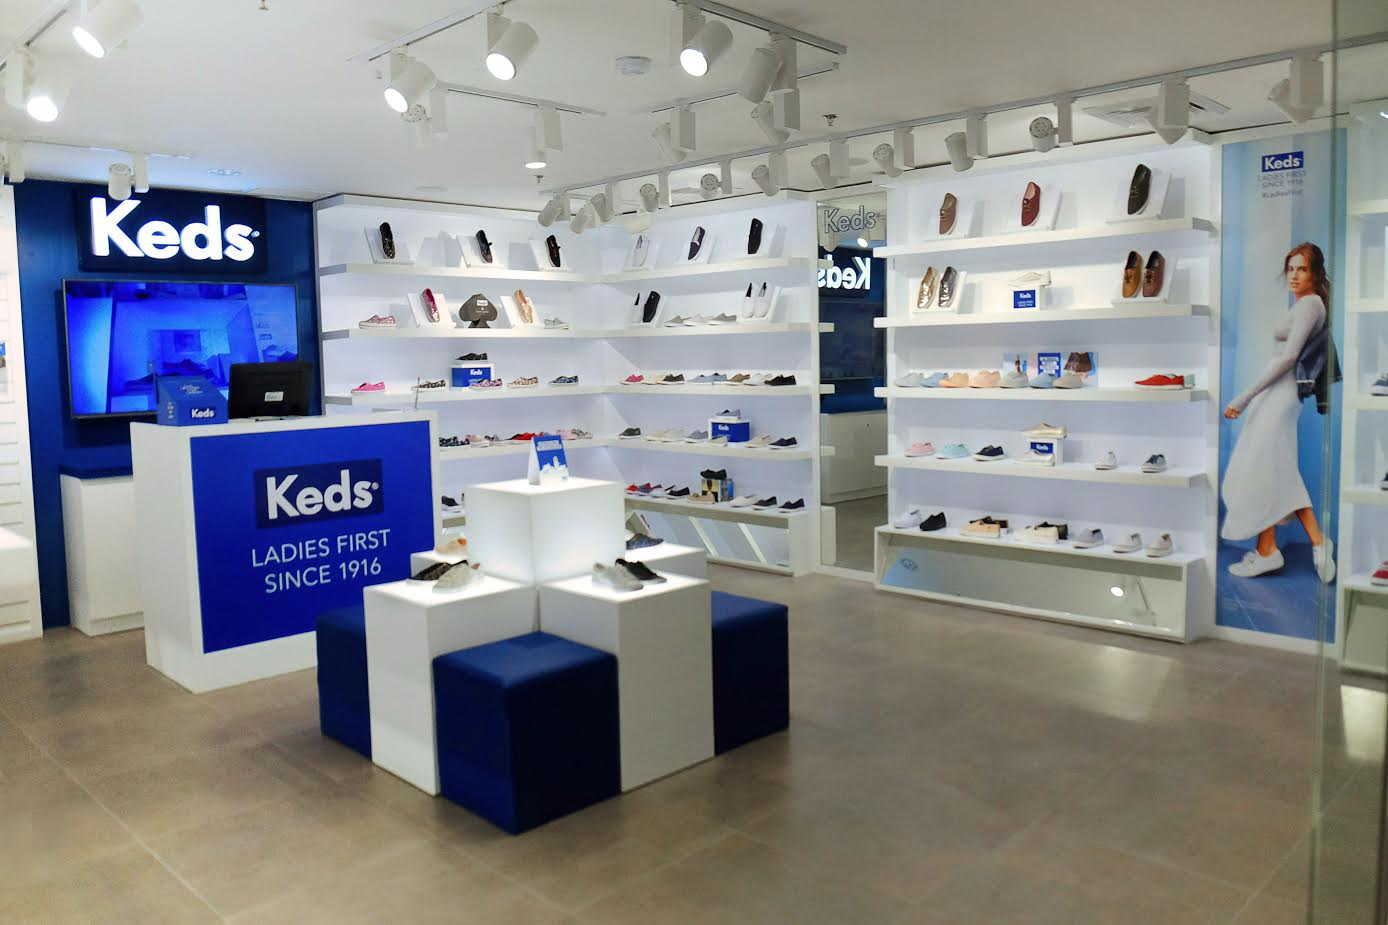 If you are outside of the US, you can buy keds online from layoffider.ml, or look for their offline store at the mall. I think Keds has opened up stores in many countries. Here in Indonesia, they are available at some malls in Jakarta.